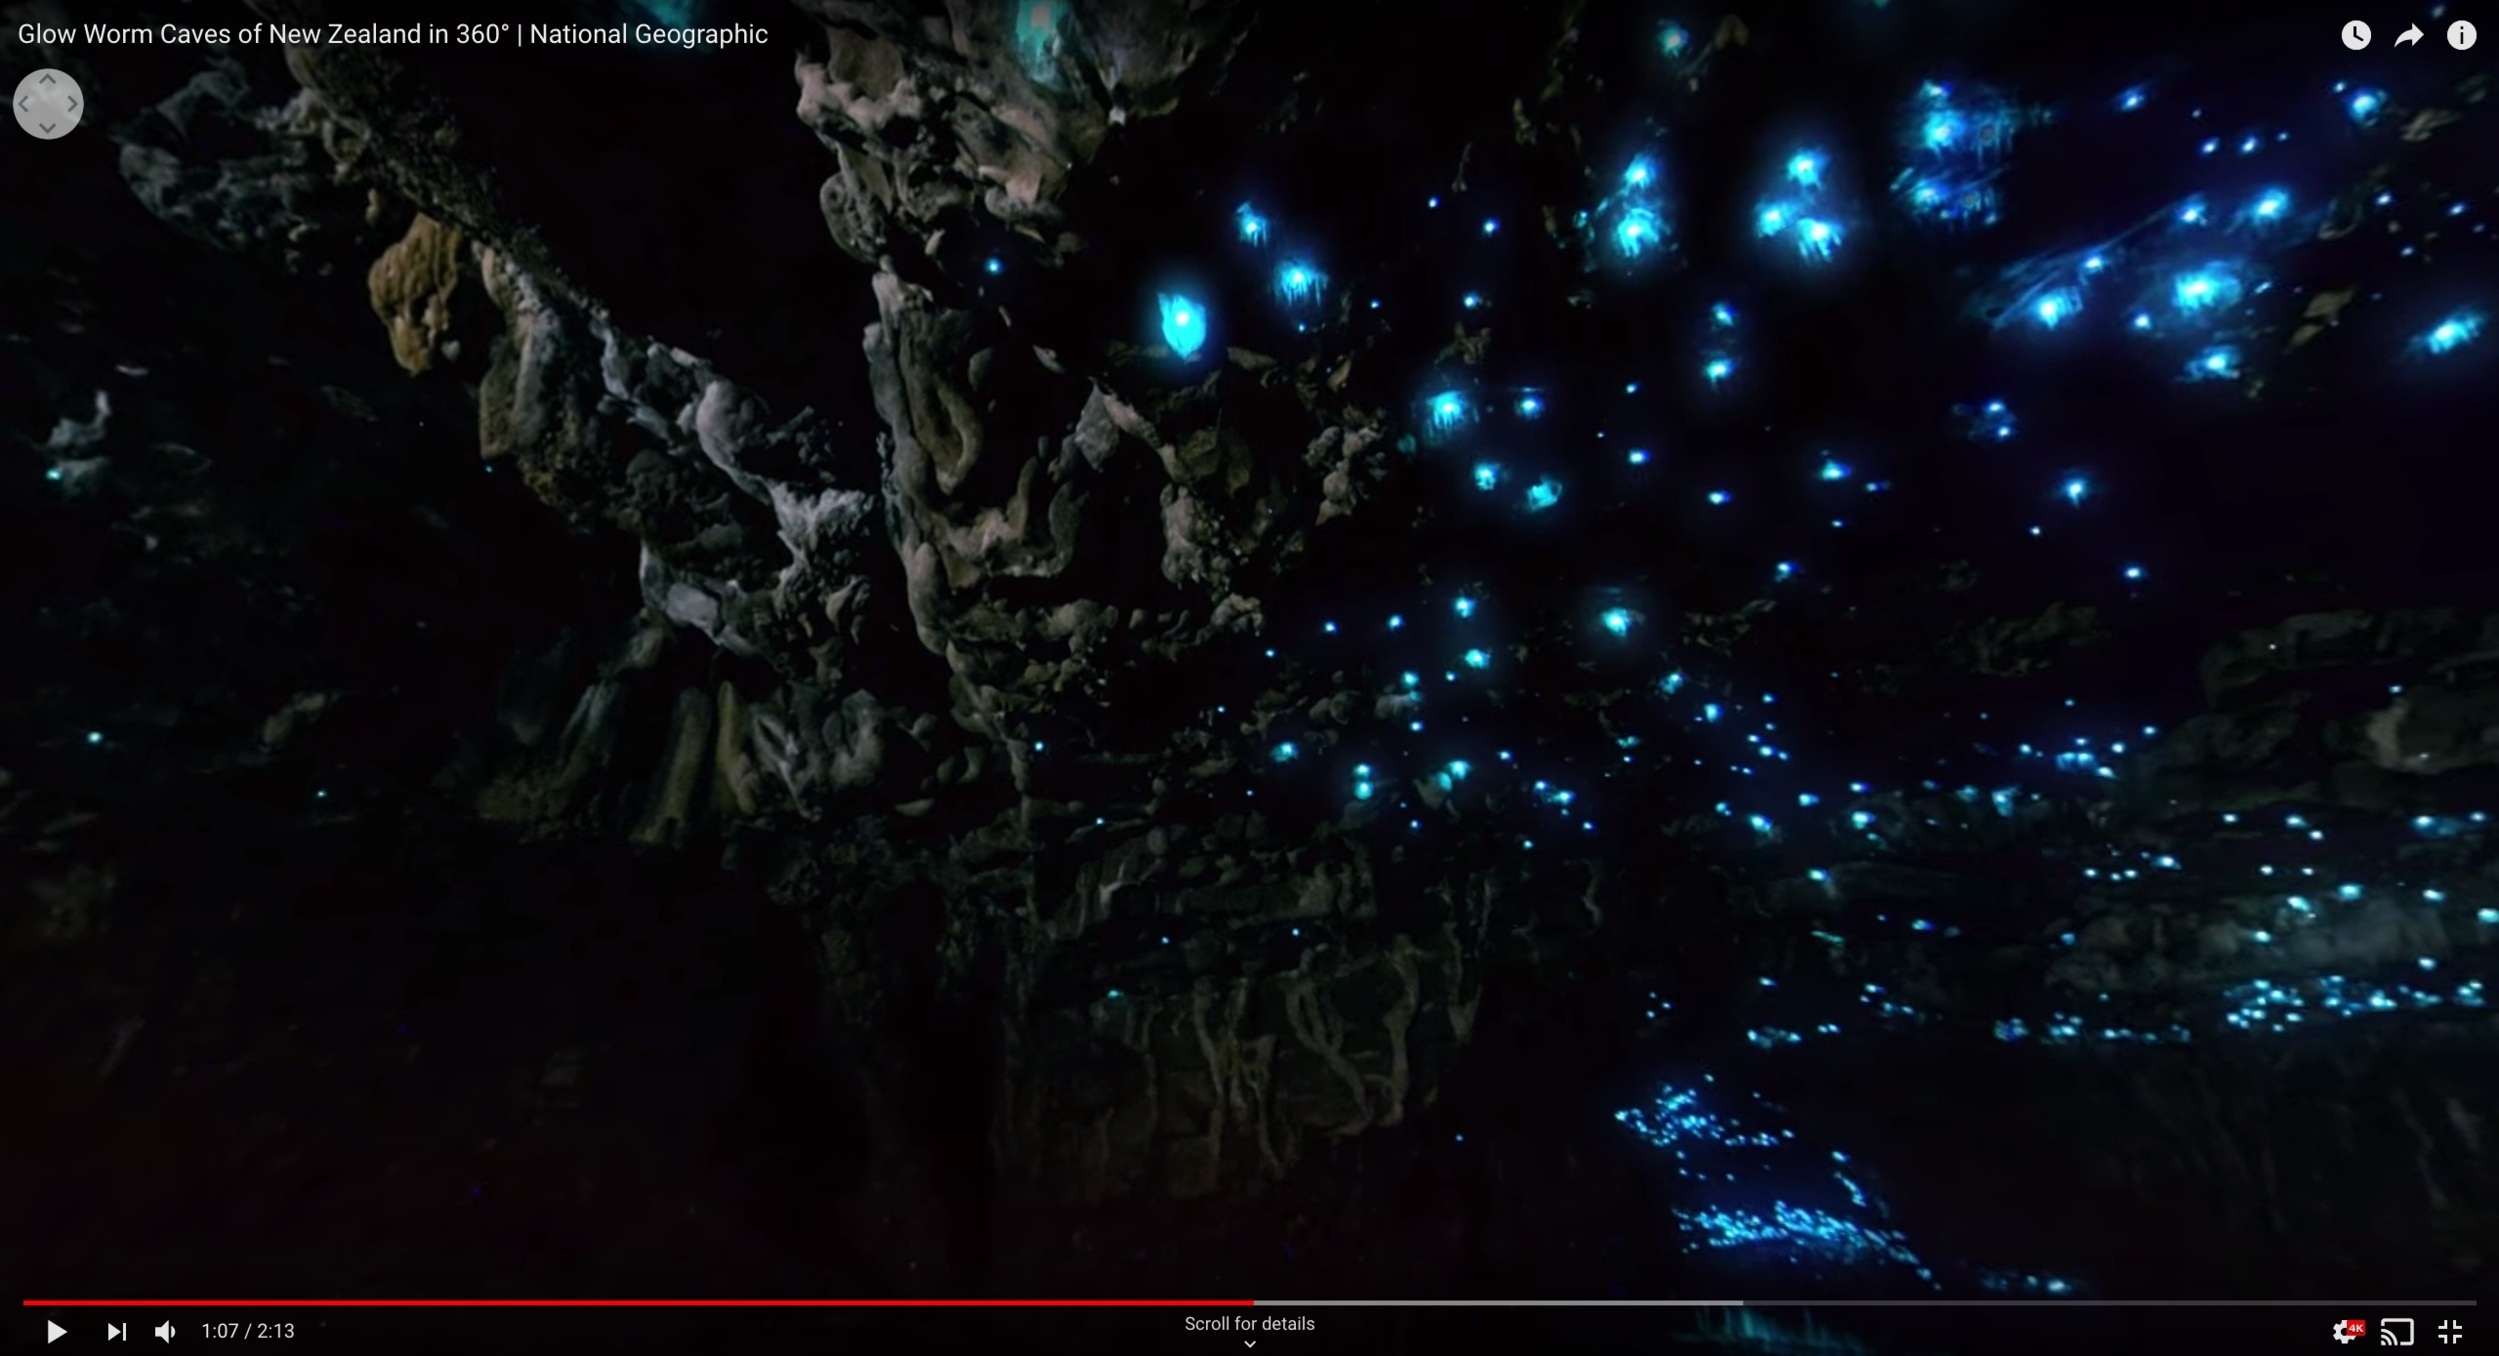 Arachnocampa luminosa; New Zealand's glowworm .Photo: Youtube, National Geographic